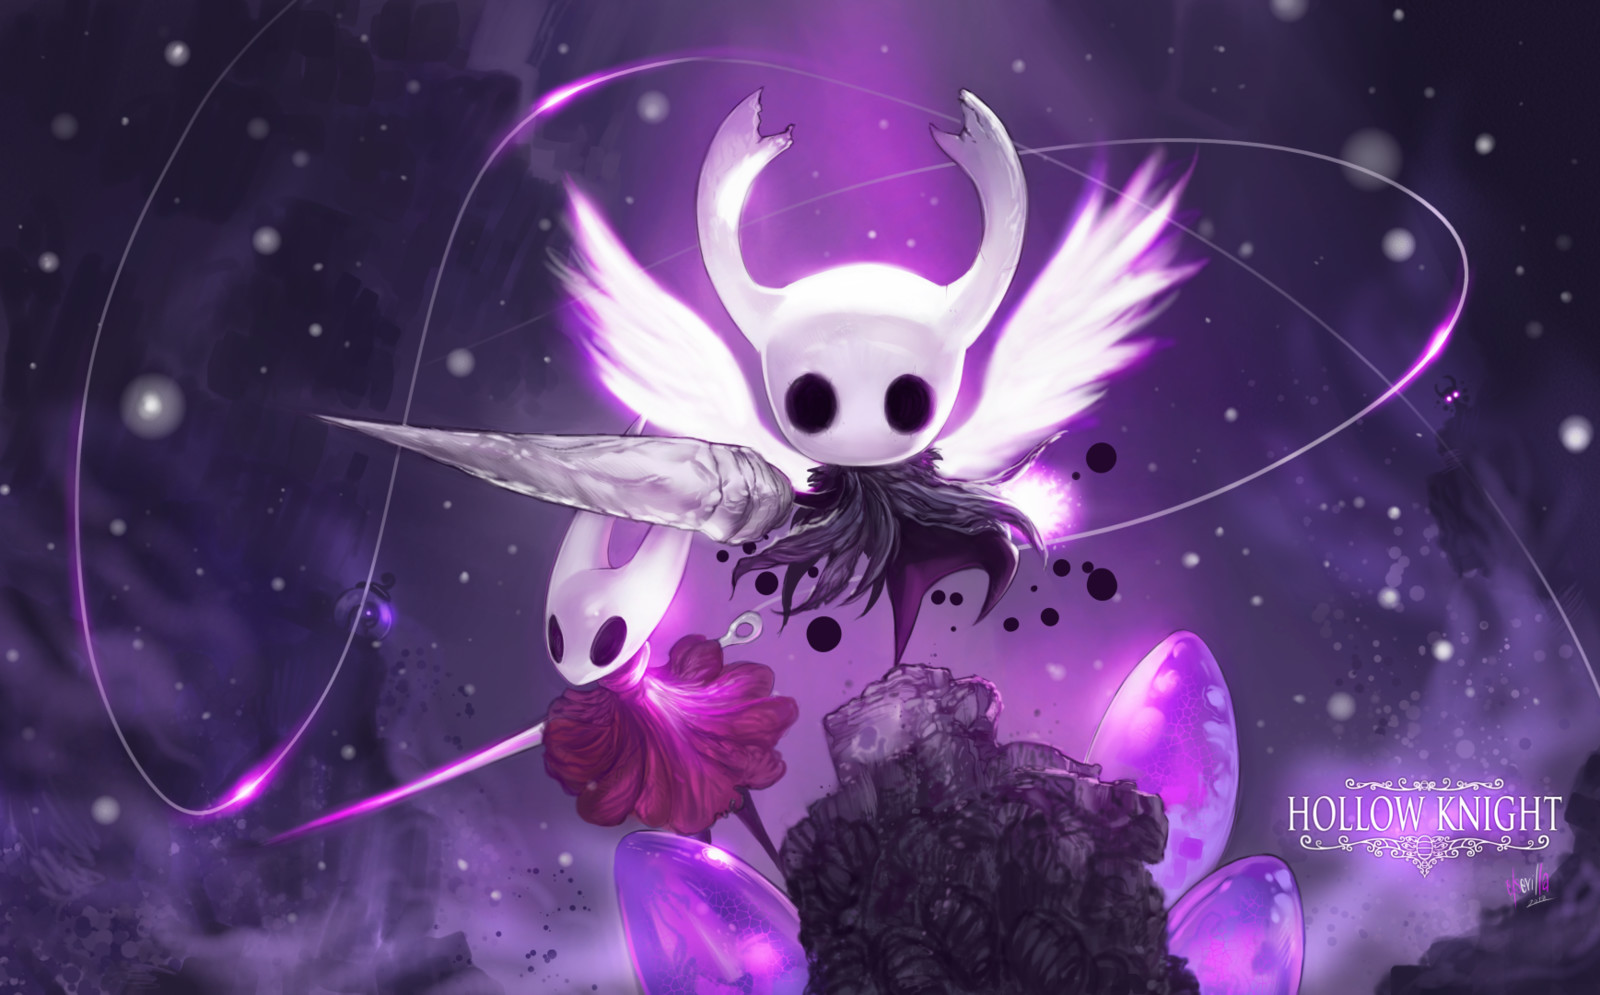 Hollow knight Wally